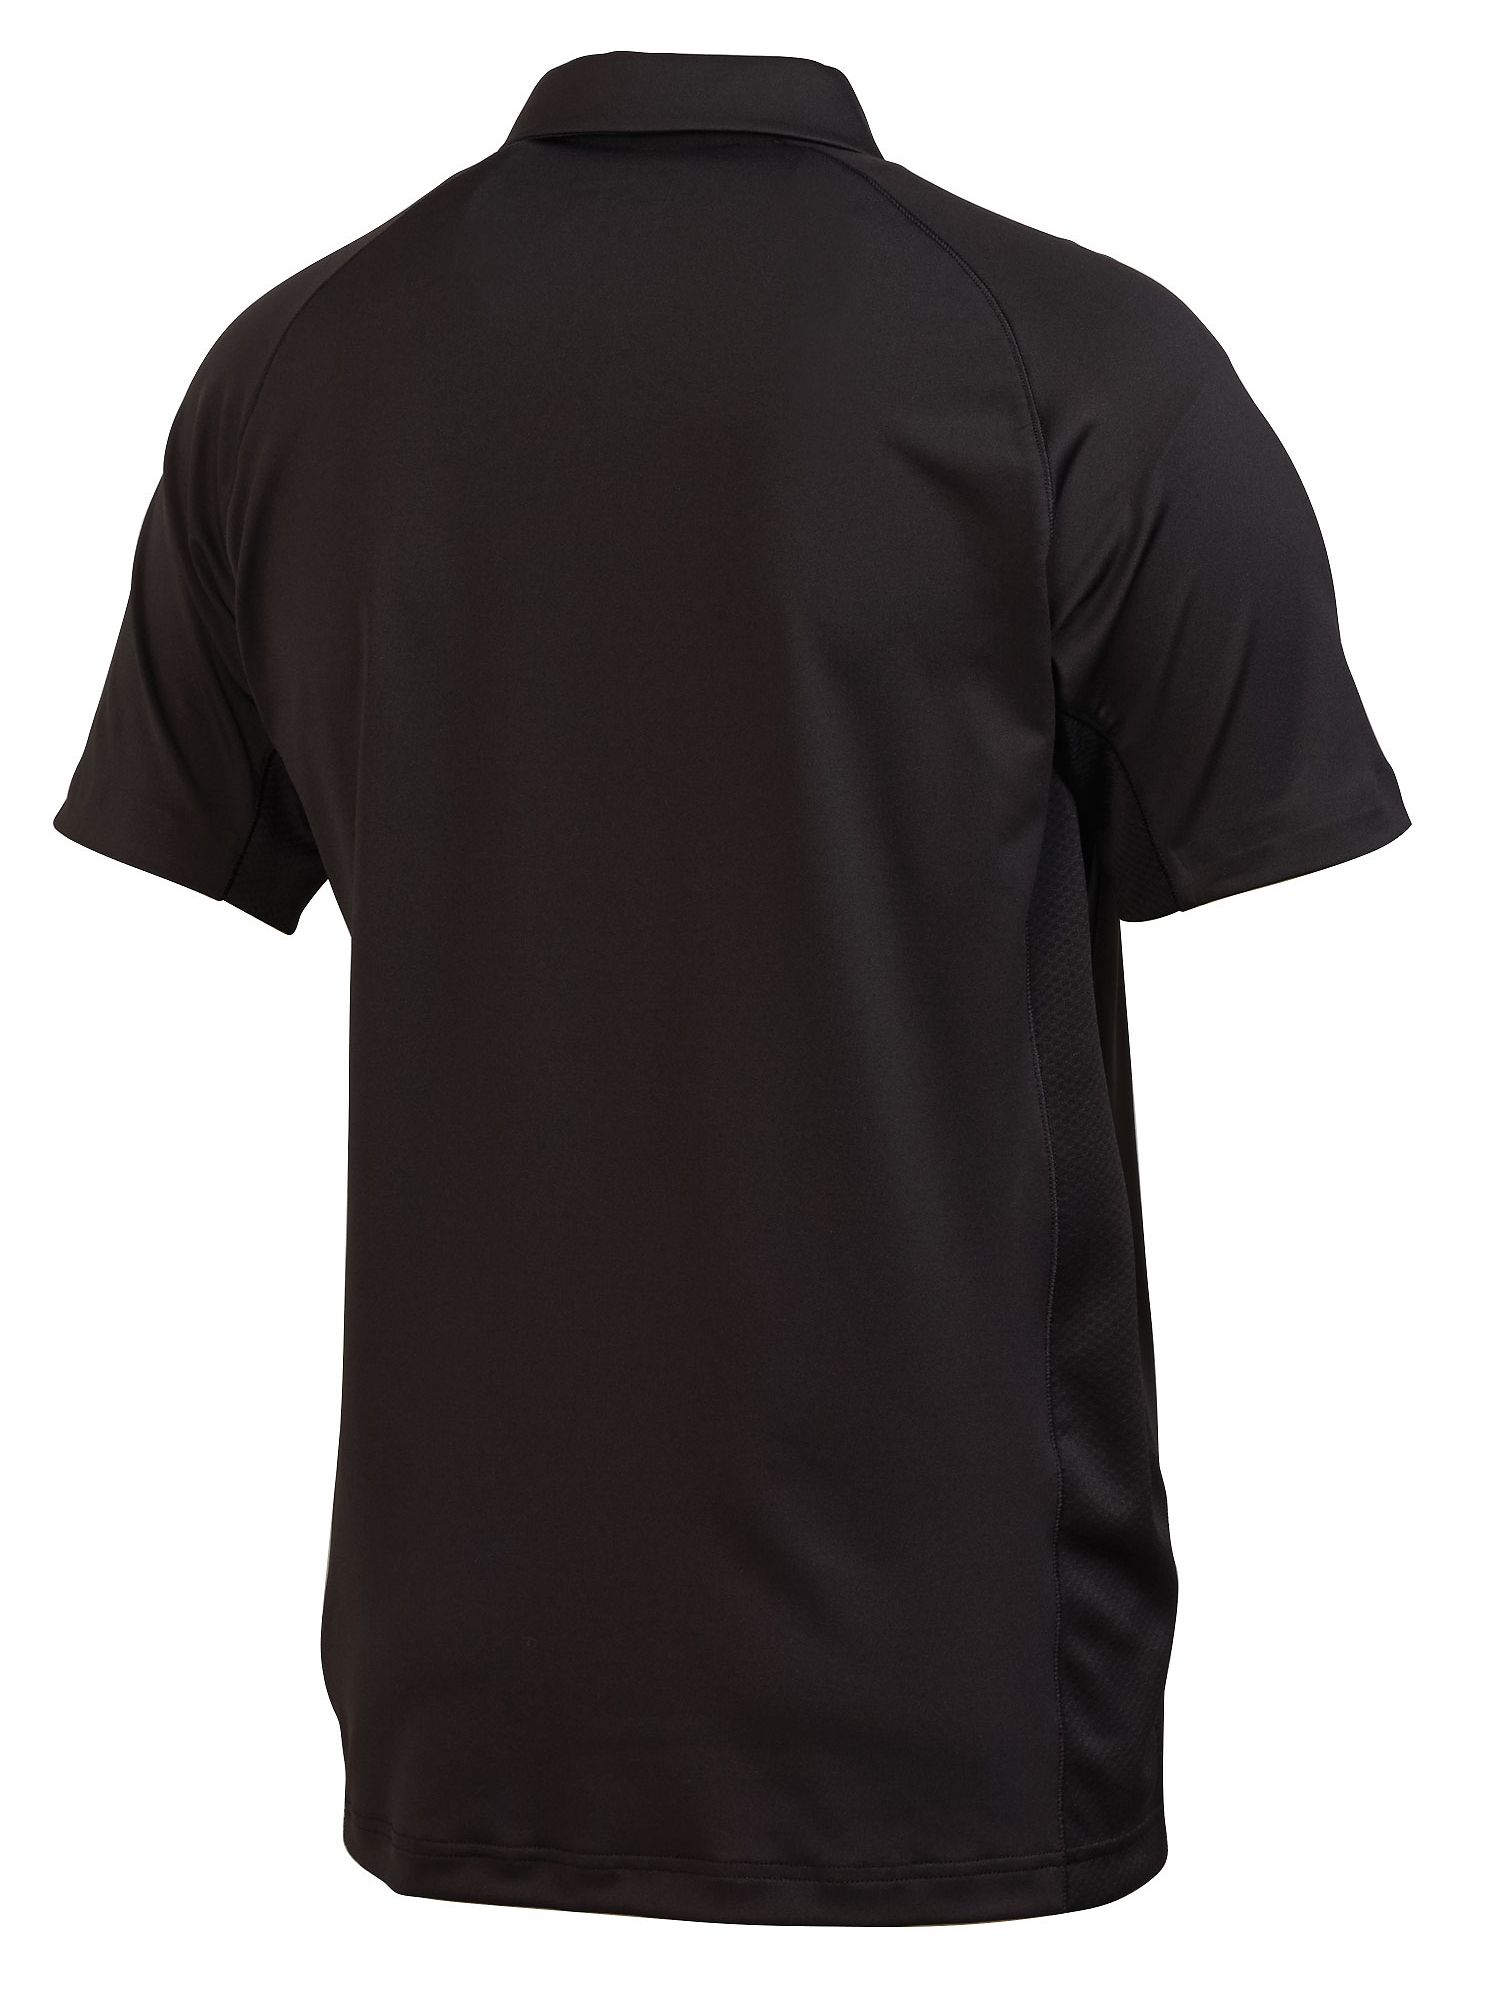 Lux ZL tech polo shirt